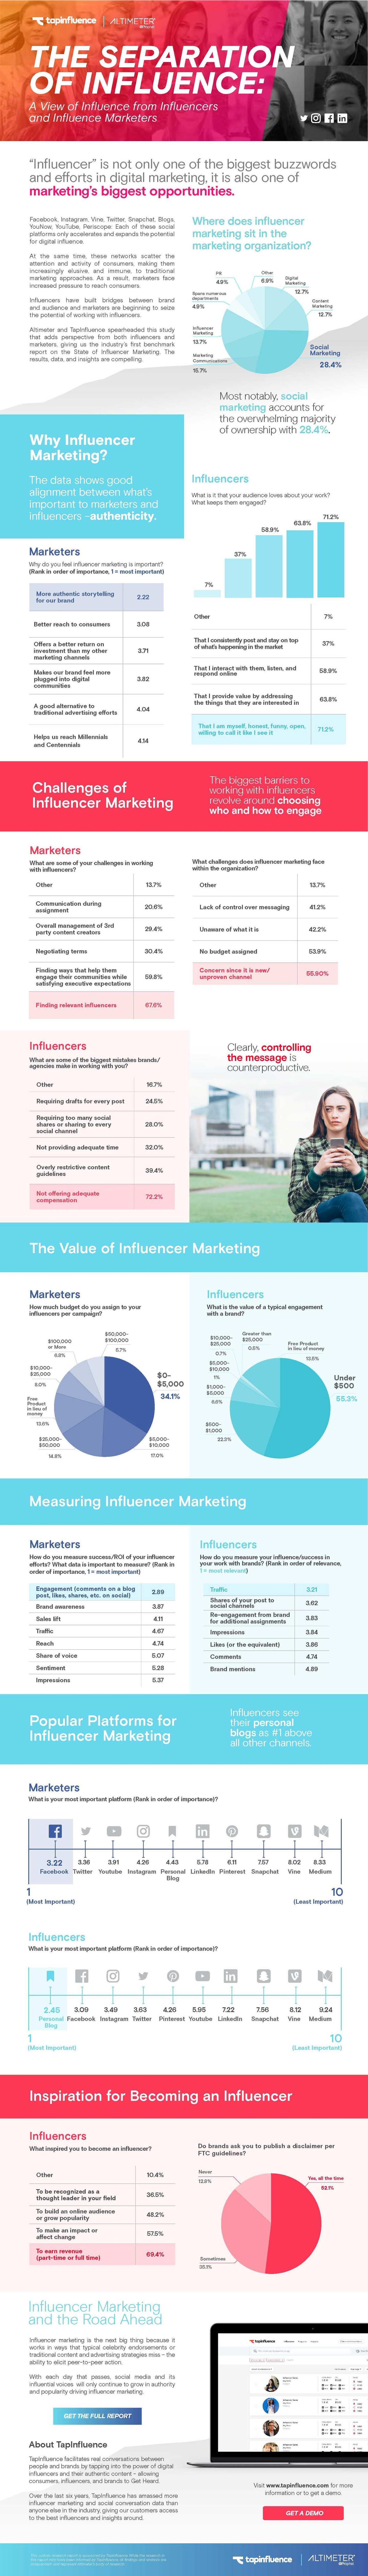 The Separation of Influence: A View of Influence from Influencers and Influence Marketers (Graphic: Business Wire)